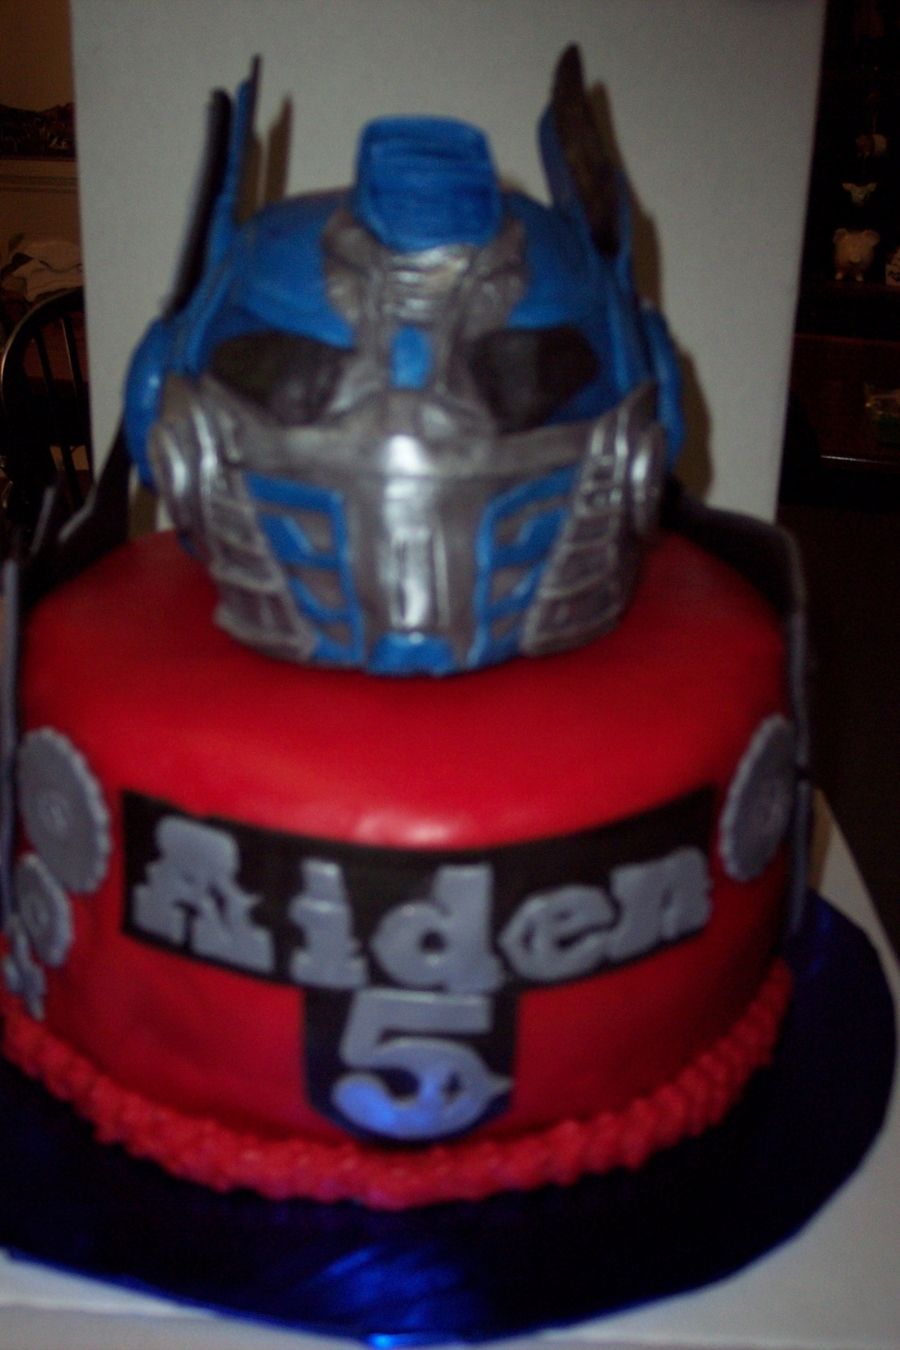 Marvelous Optimus Prime Transformers Birthday Cake Cakecentral Com Funny Birthday Cards Online Elaedamsfinfo